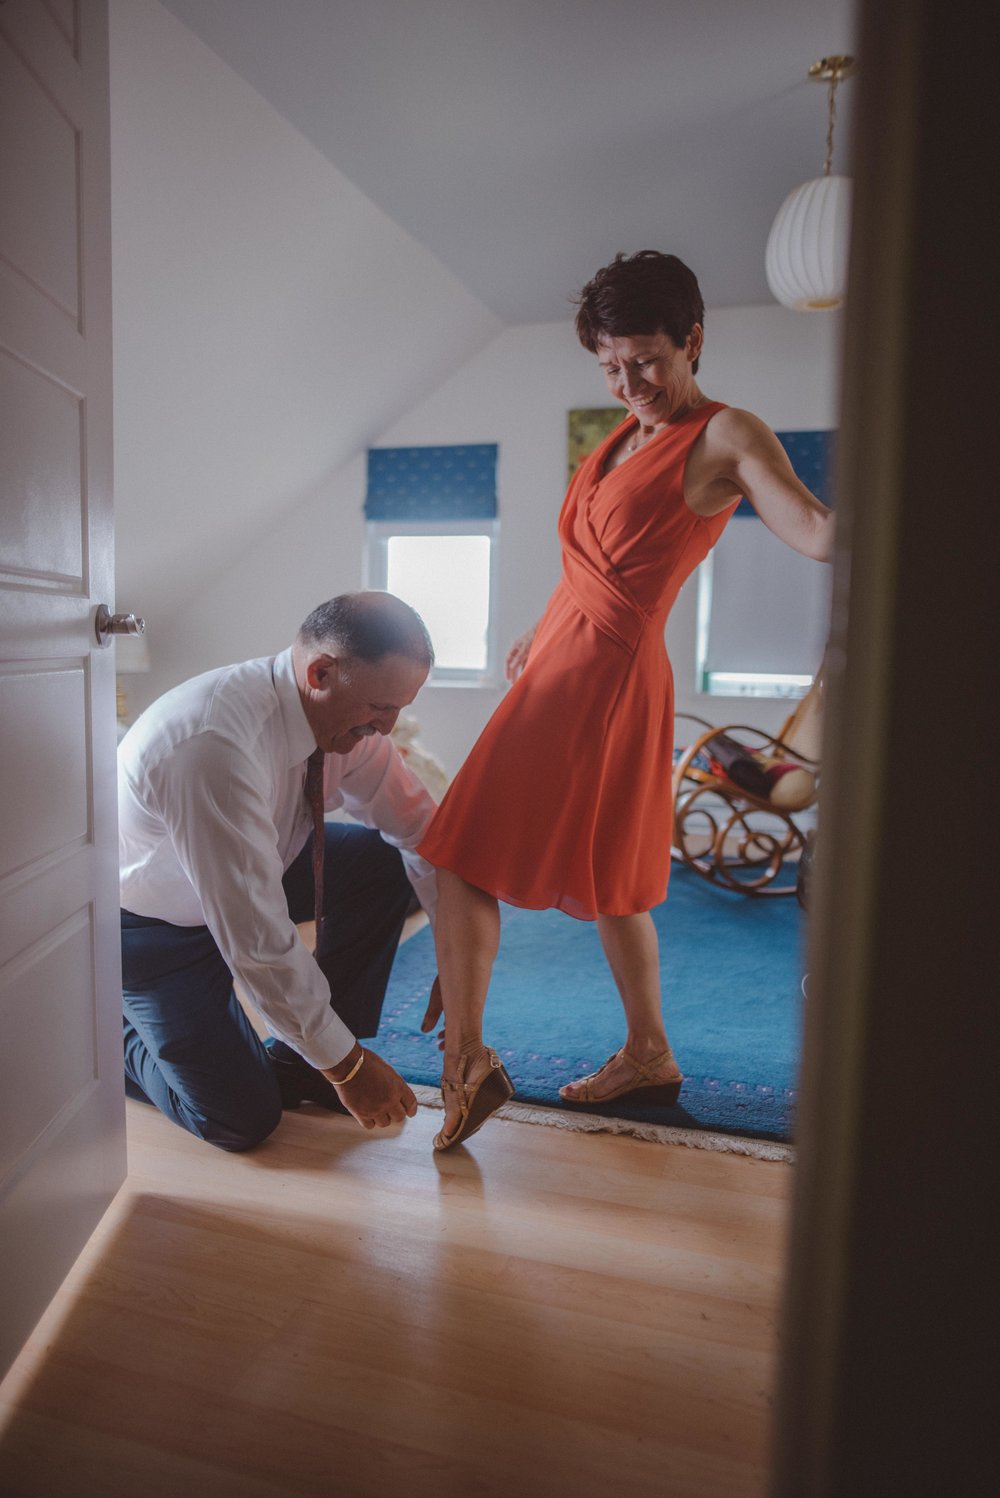 ottawa_wedding_photographer_mariage_gatineau_photographe-6.jpg